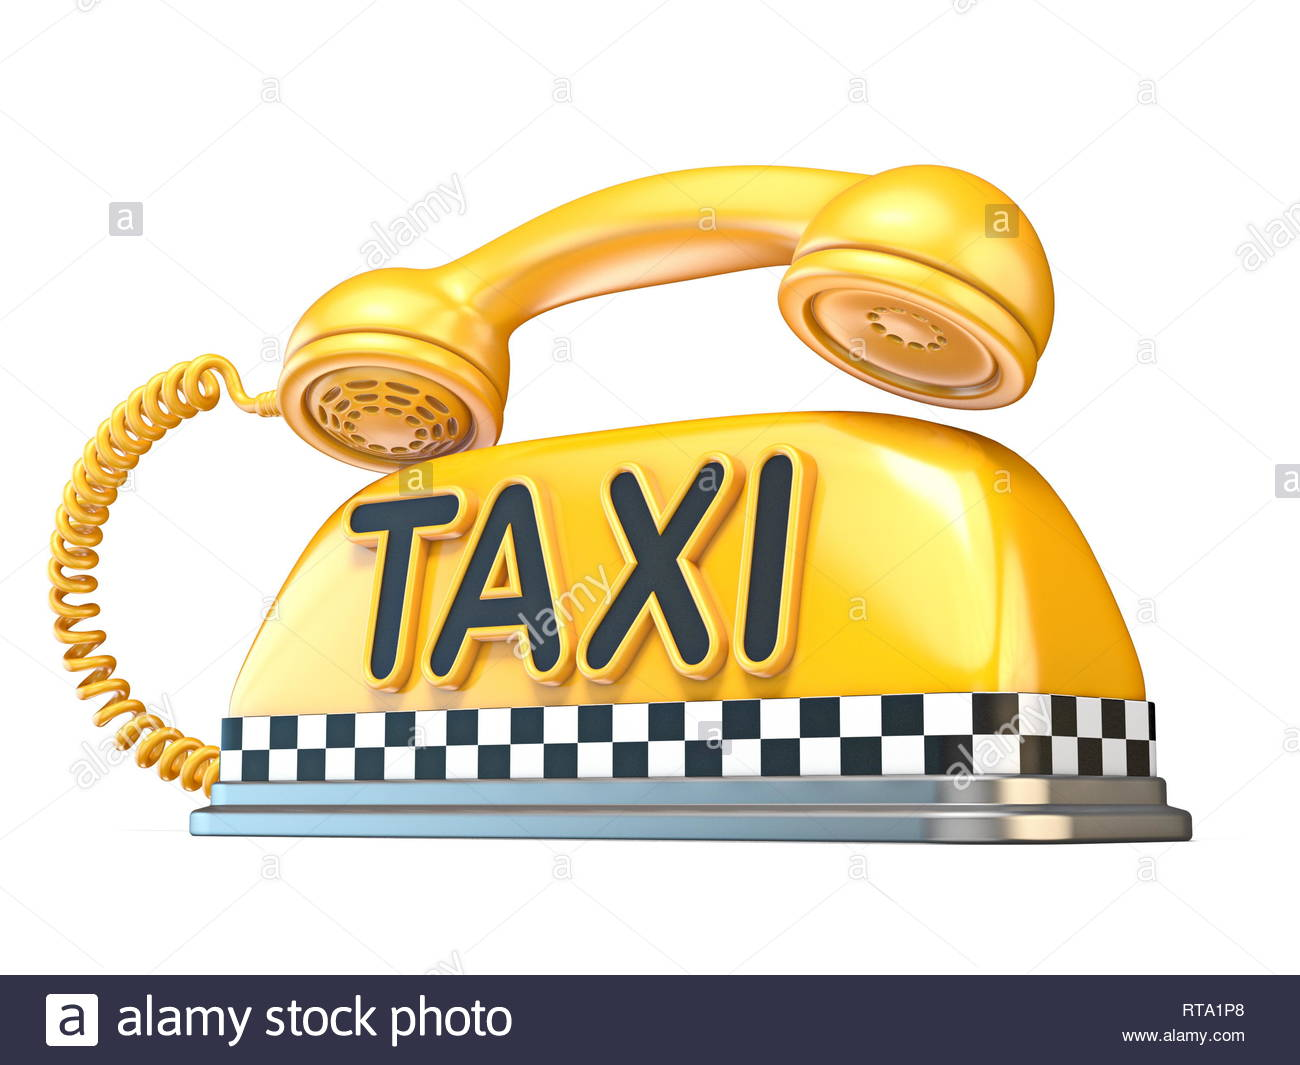 Taxi sign with telephone handset 3D rendering illustration 1300x1065